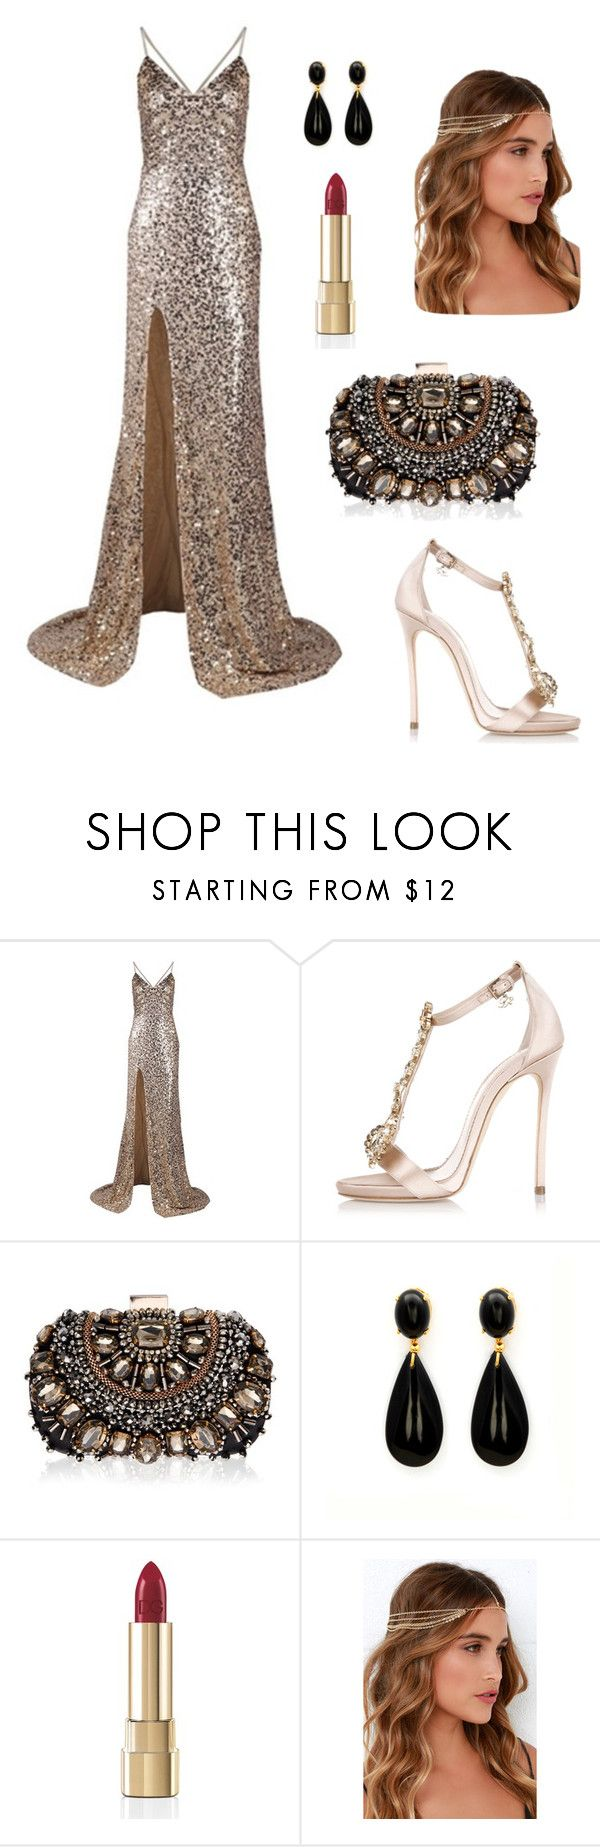 """""""Great Gatsby Look"""" by anggeyy on Polyvore featuring Dsquared2, Lipsy, Dolce&Gabbana and Lulu*s"""